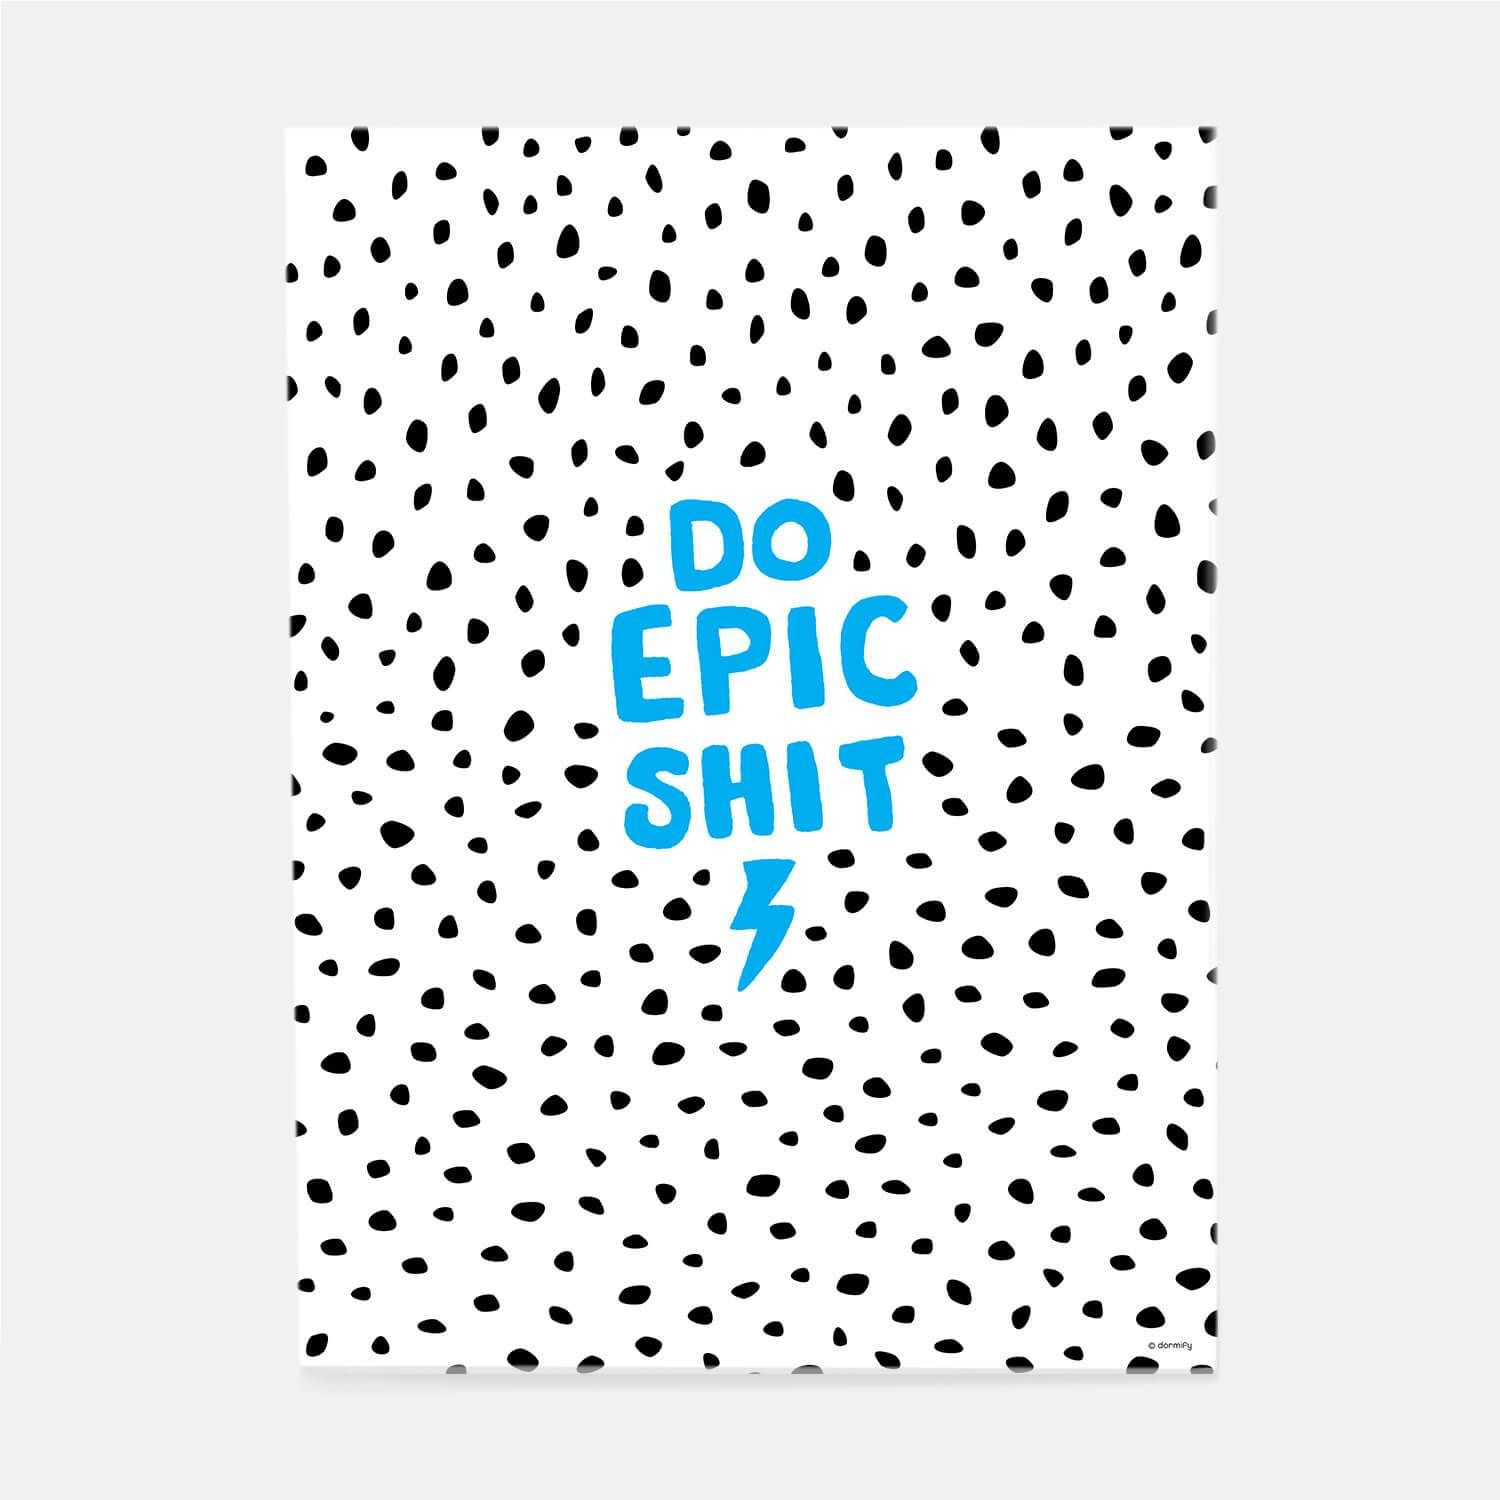 DIY. Need a little inspiration? Maybe some motivation? This print has you covererd. A little bit on the playful side, this piece was designed to inspire. Hang it above your desk or near your front door and get ready to go out there and conquer the world.